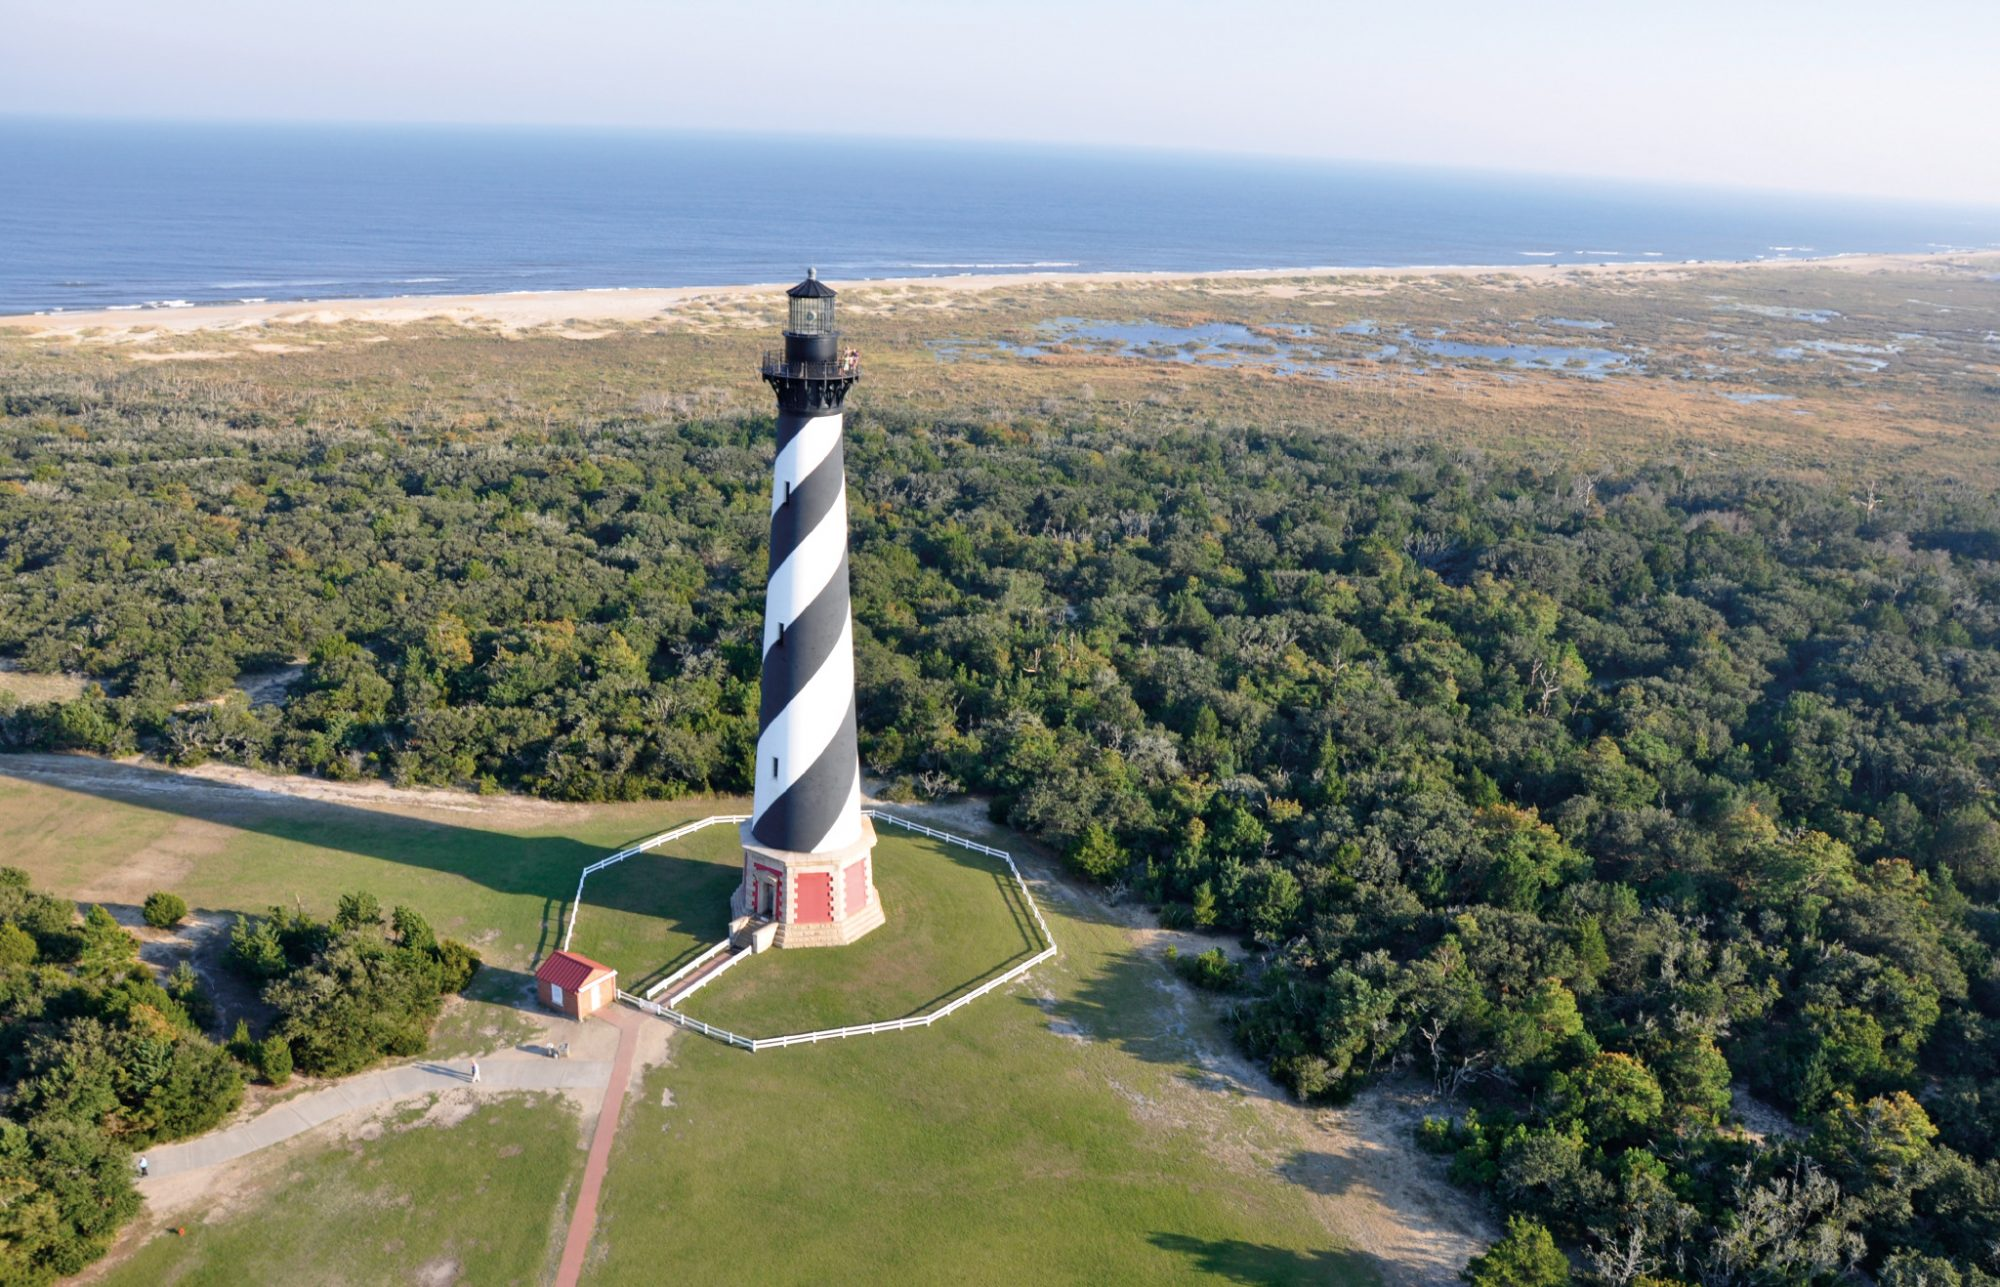 Hatteras Island, North Carolina